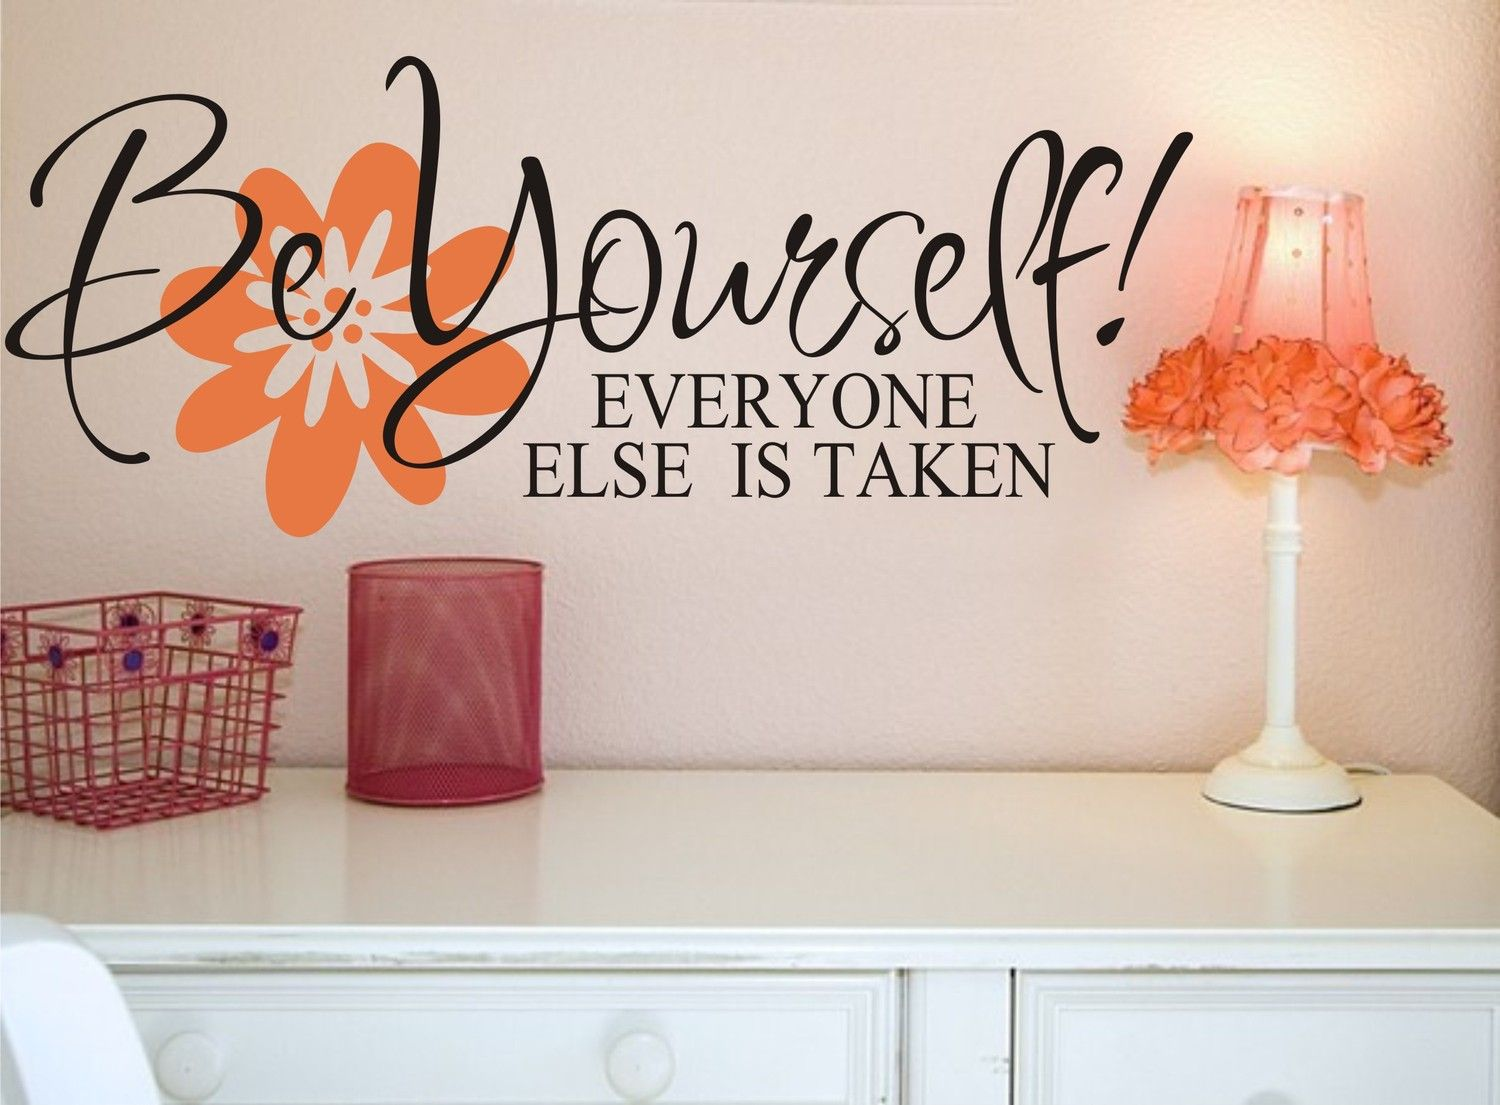 Bedroom wall stickers for teenage girls - Be Yourself Vinyl Lettering Vinyl Wall Art Vinyl Decal Great For A Teen Girl